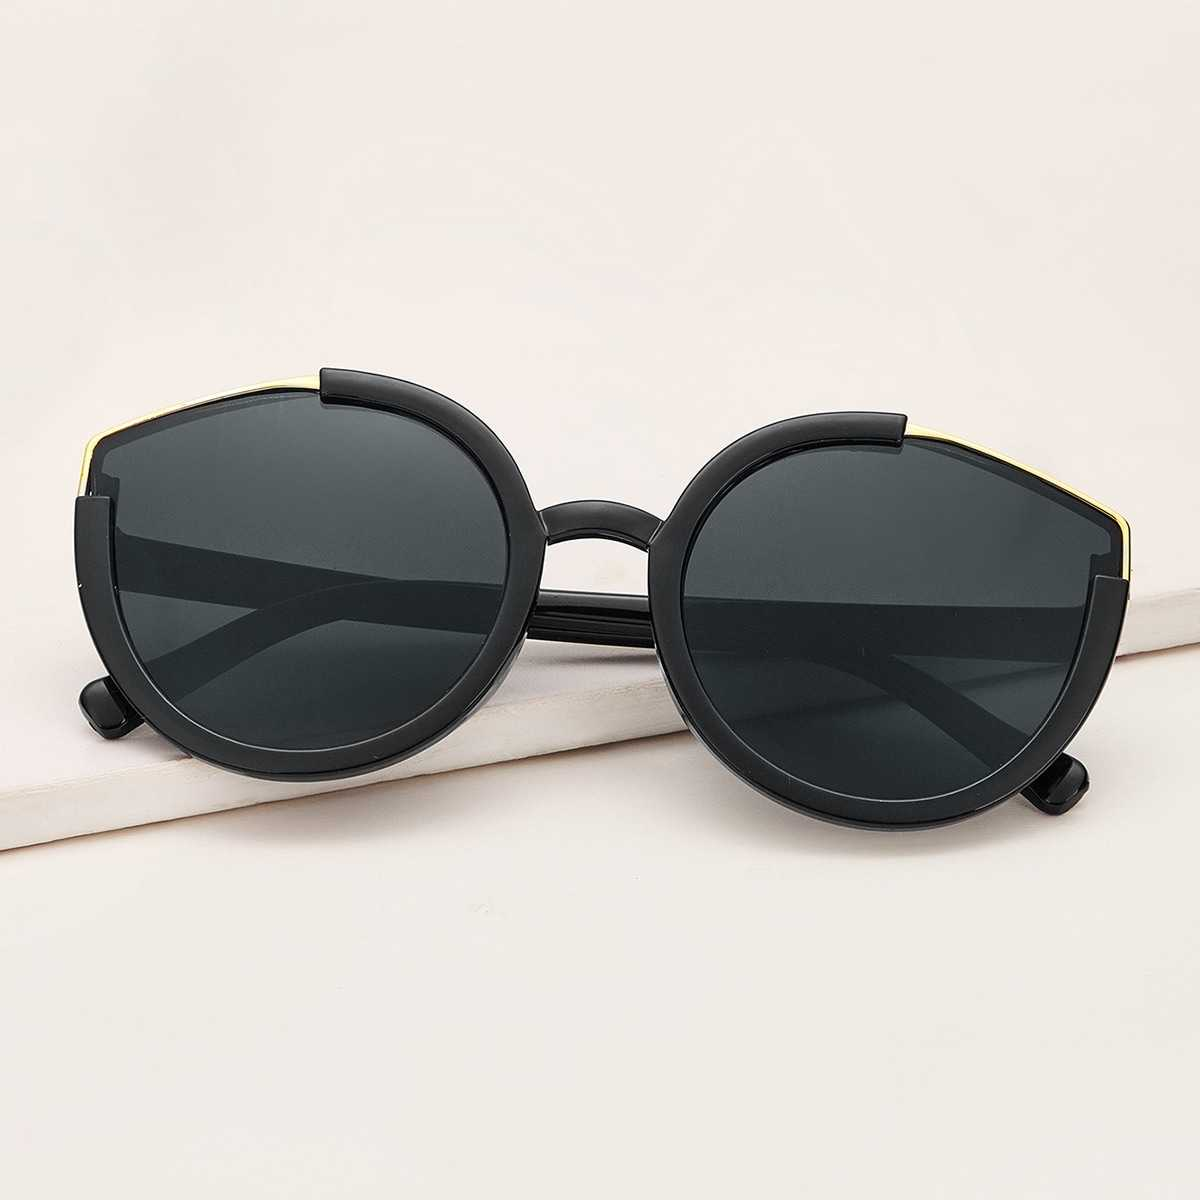 Two Tone Frame Flat Lens Sunglasses in Black by ROMWE on GOOFASH